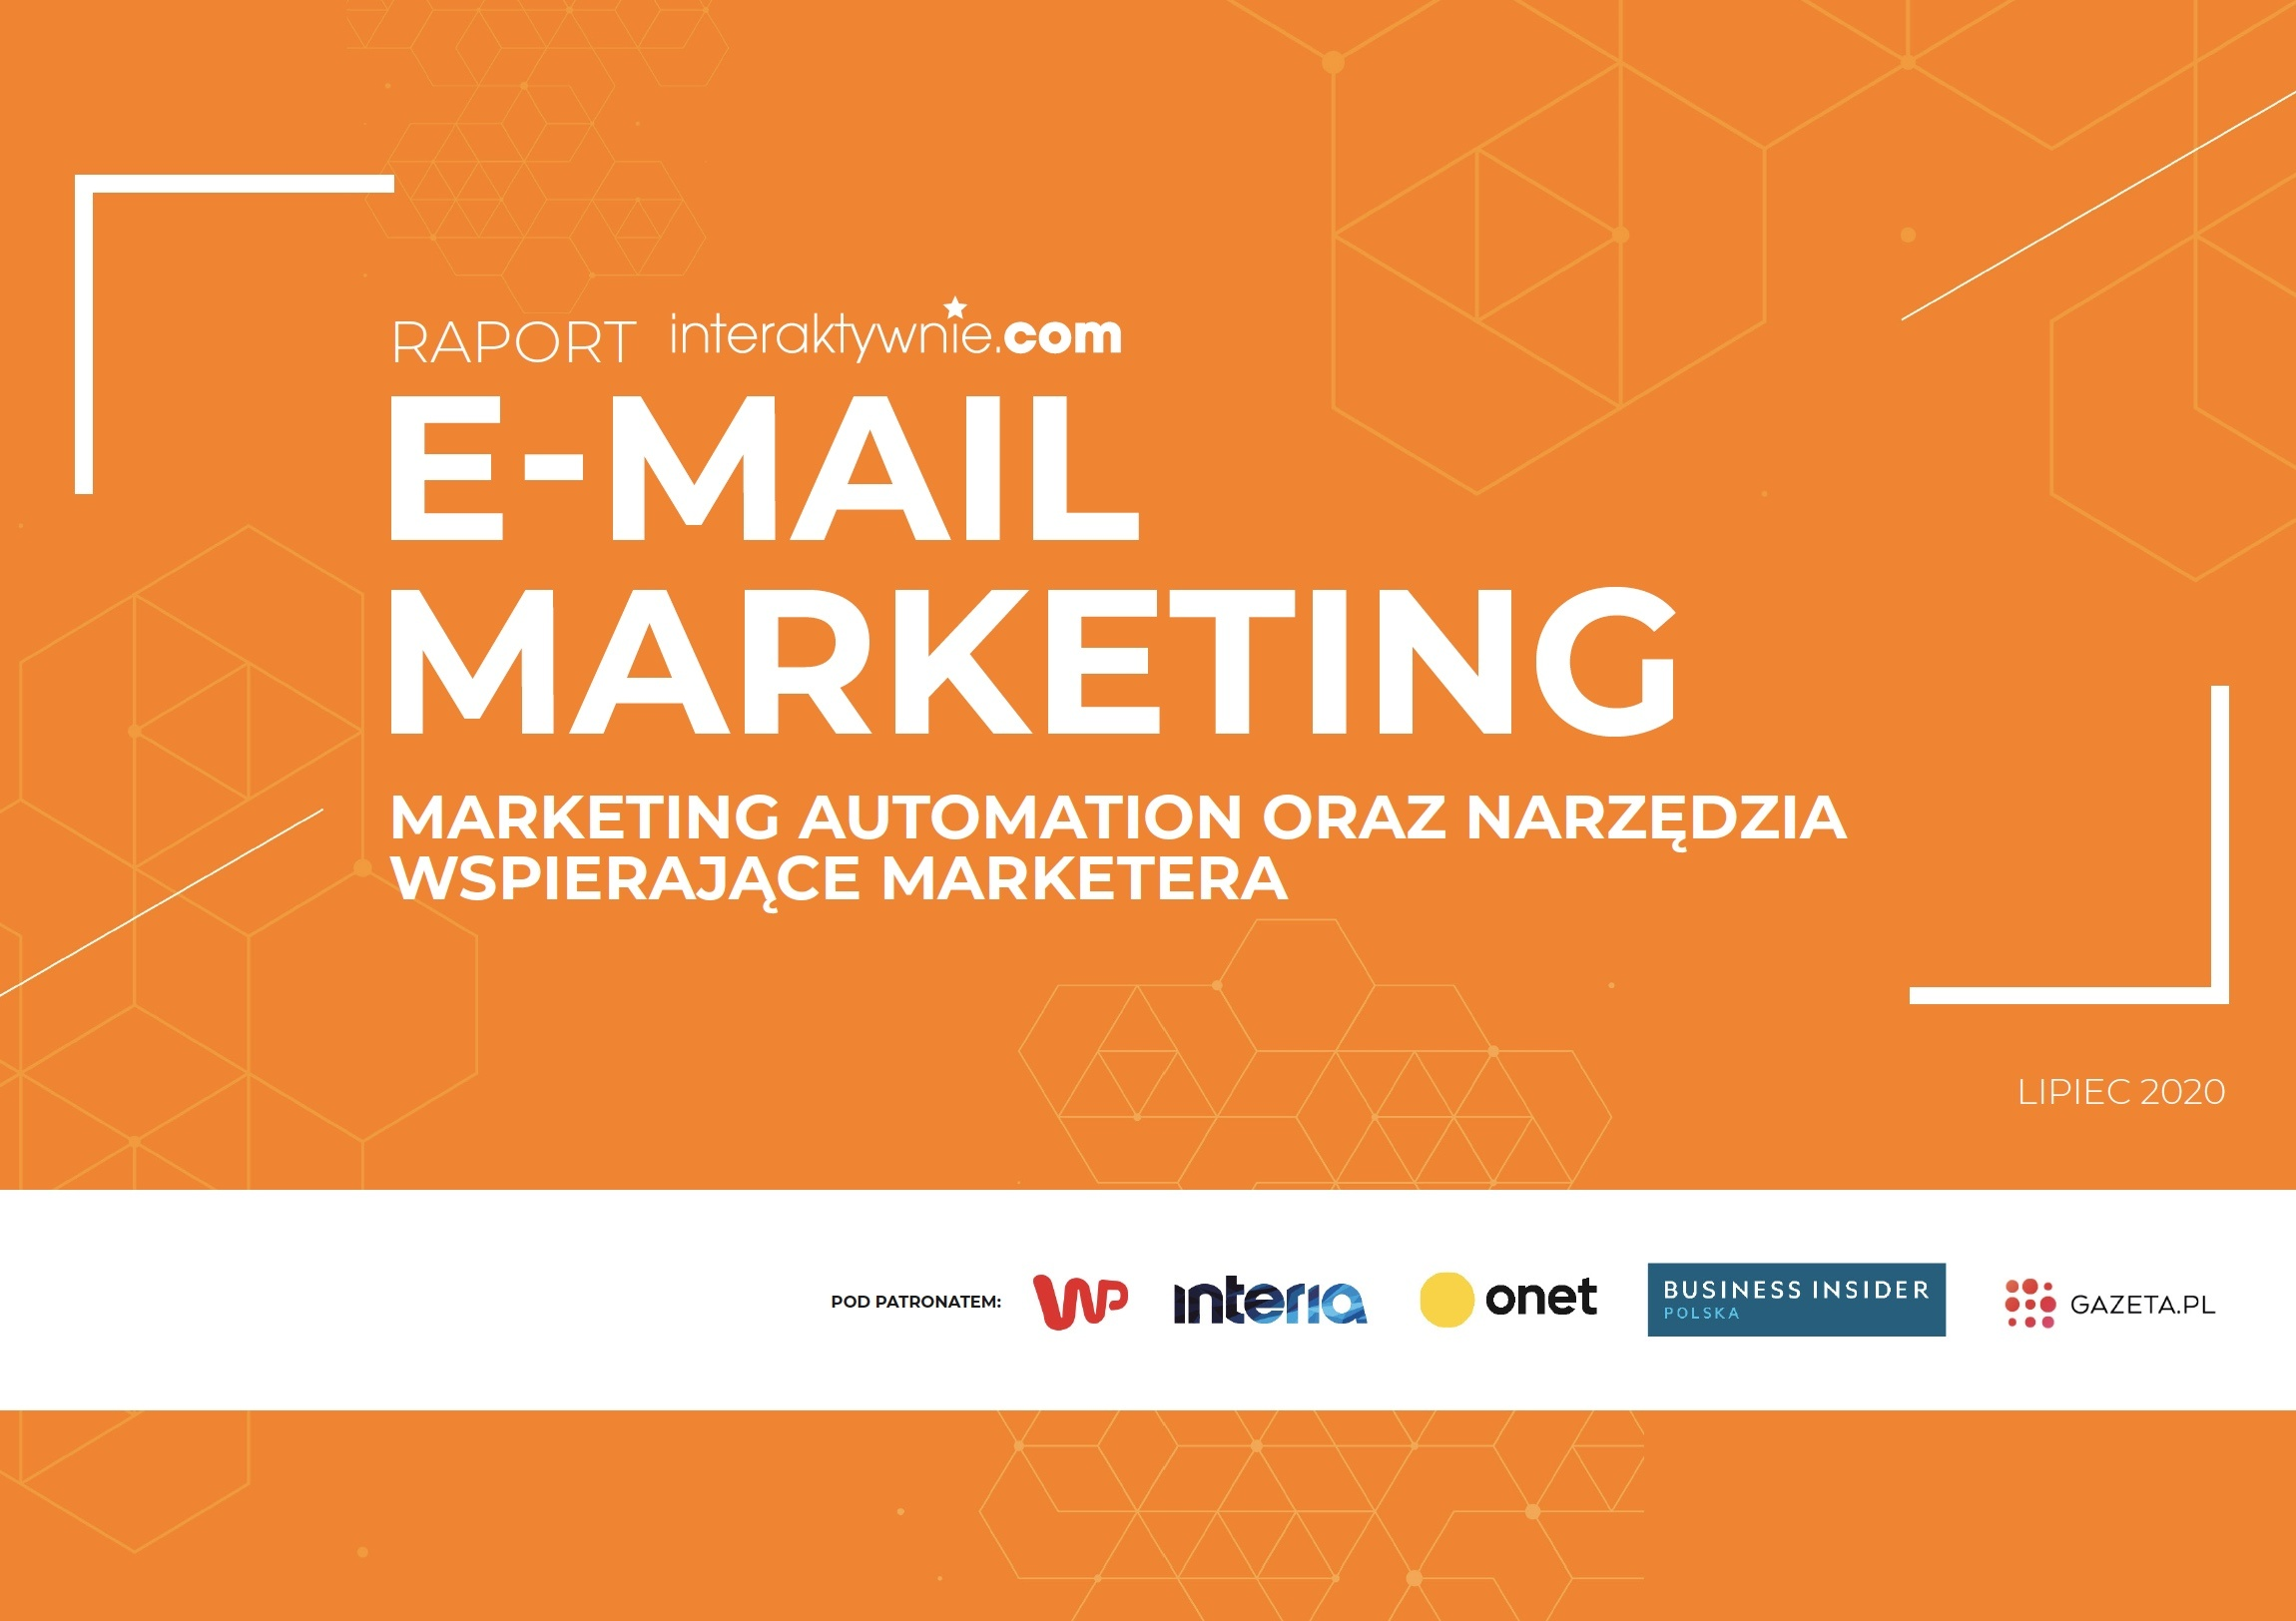 Marketing automation, email marketing